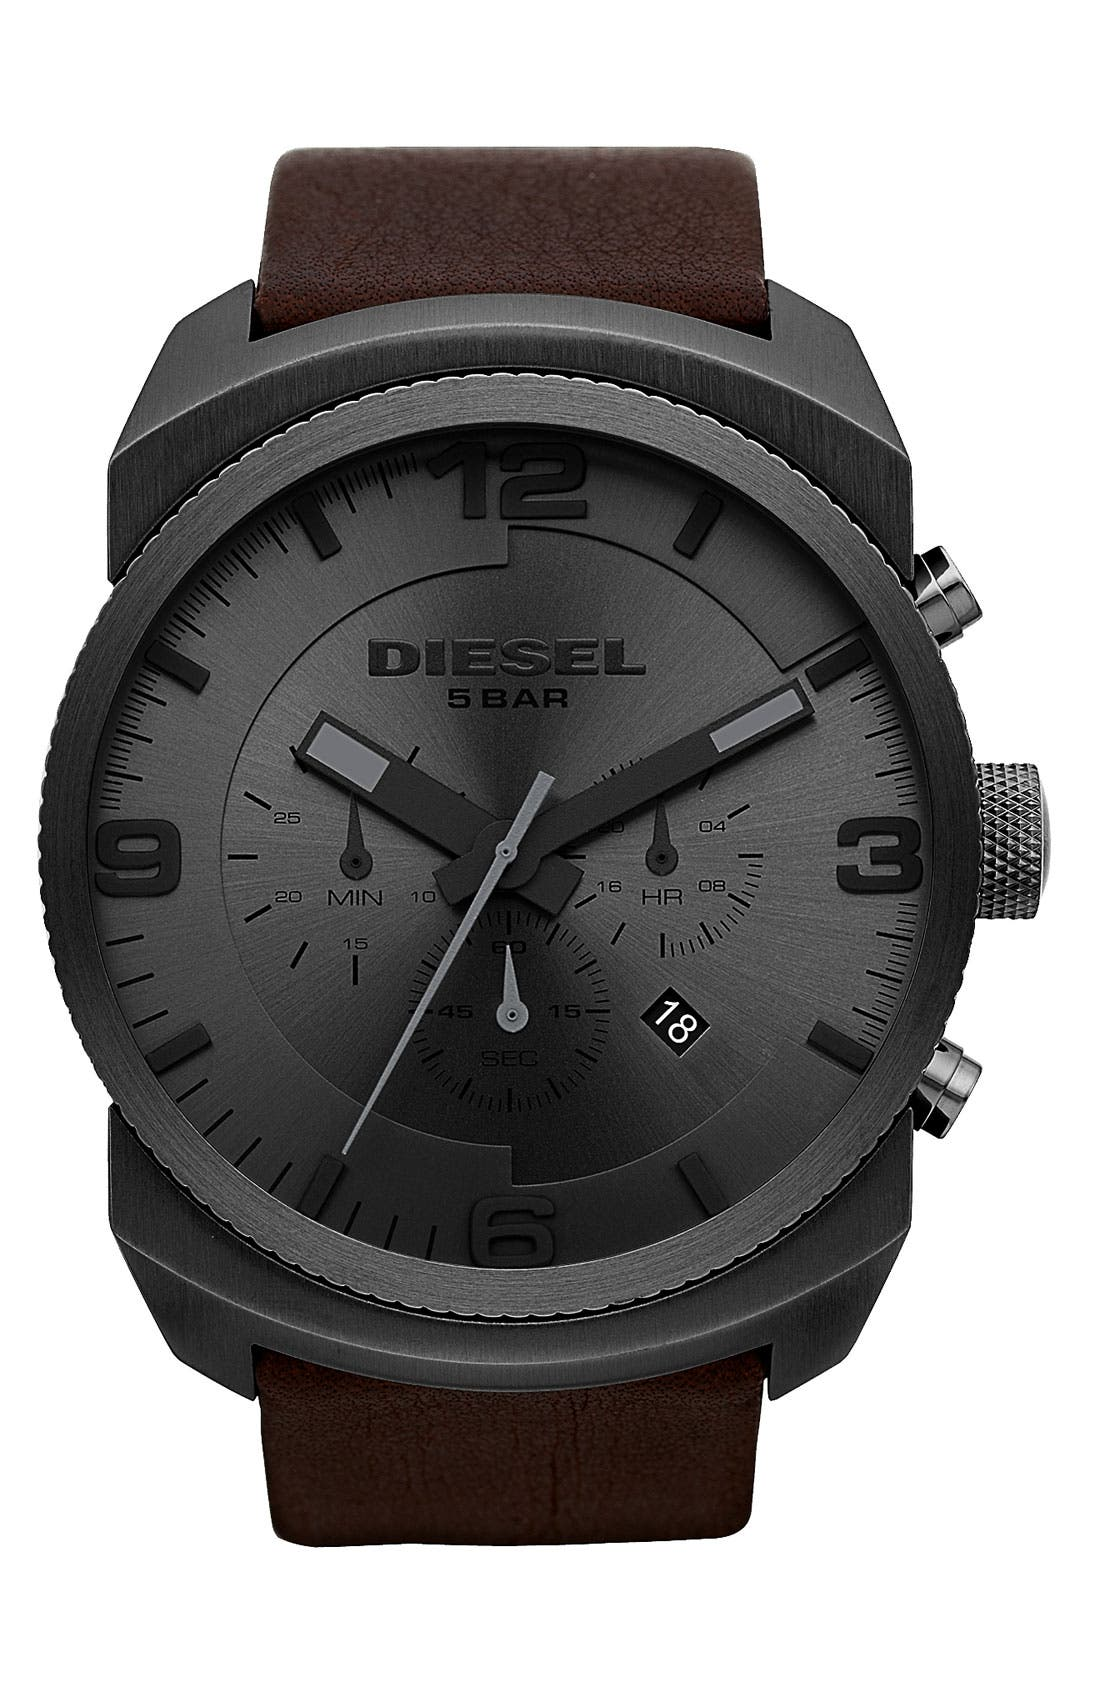 Main Image - DIESEL® 'F Stop' Chronograph Leather Strap Watch, 47mm